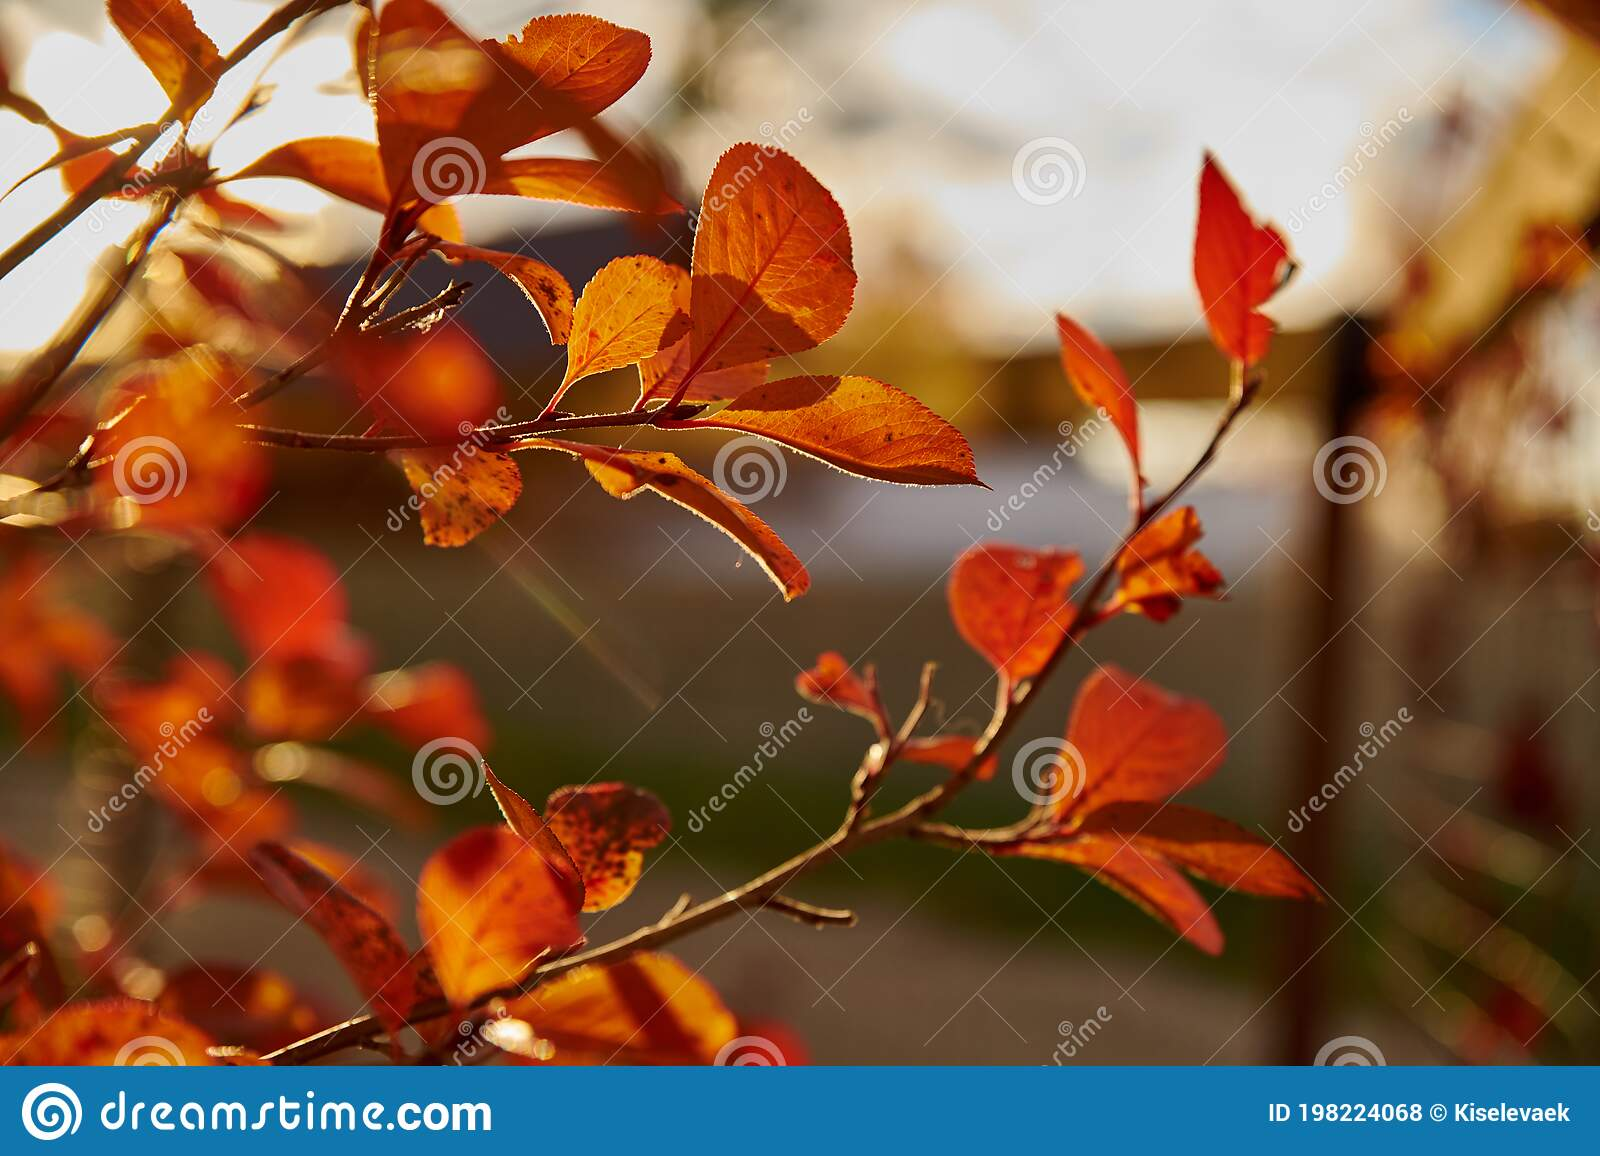 Autumn Background Orange And Red Autumn Leaves On A Tree Branch In The Sun Stock Photo Image Of Landscape Colour 198224068